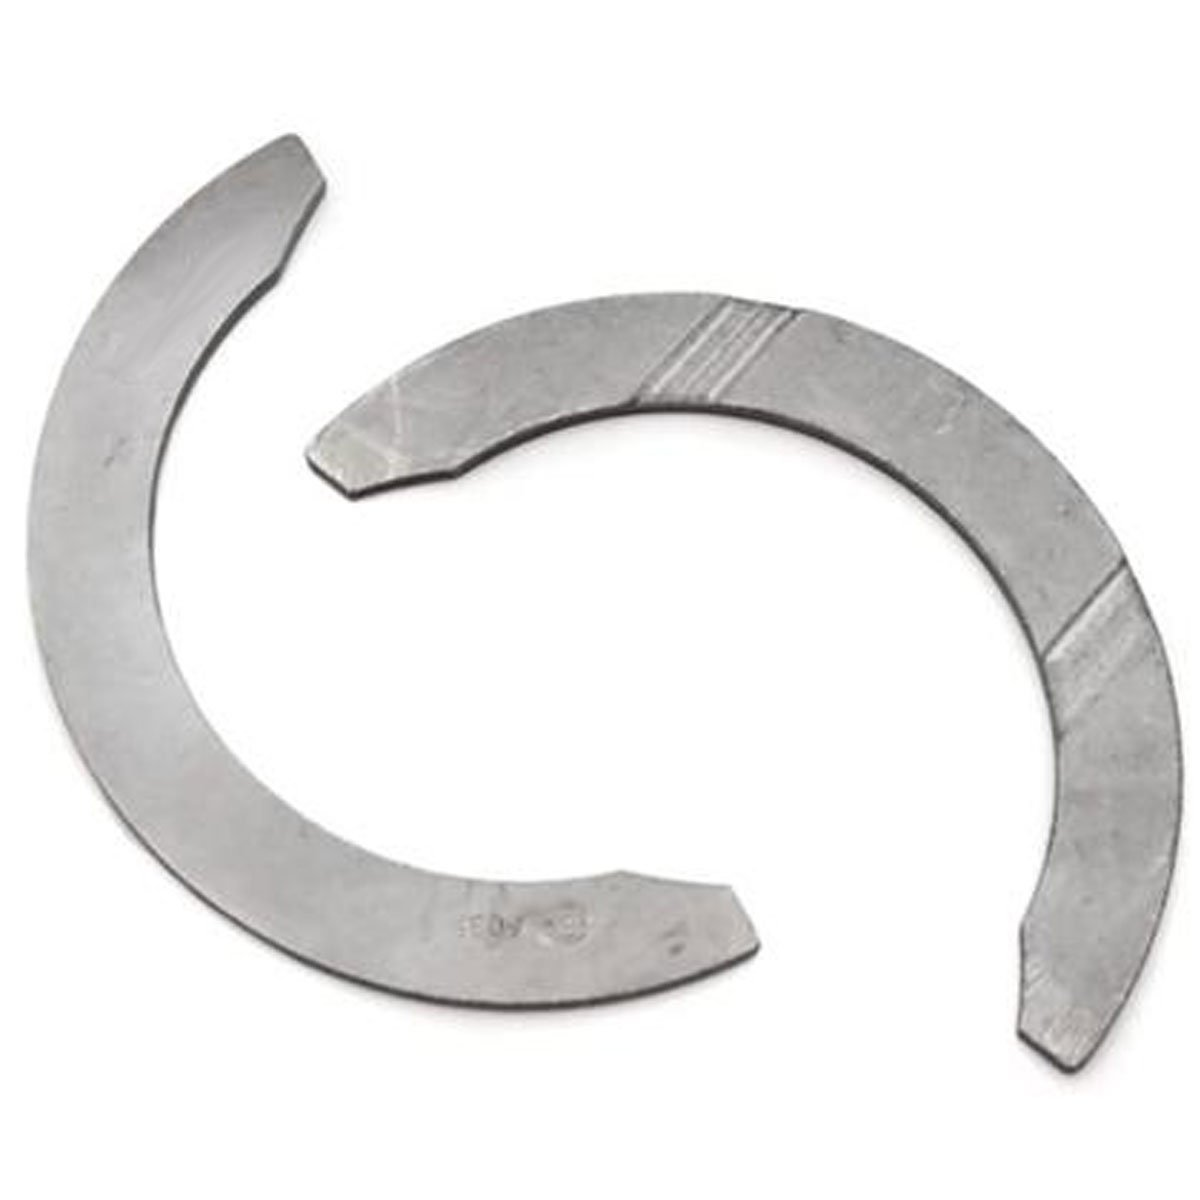 ACL (2T1689-STD) Standard Size Thrust Washer for Toyota